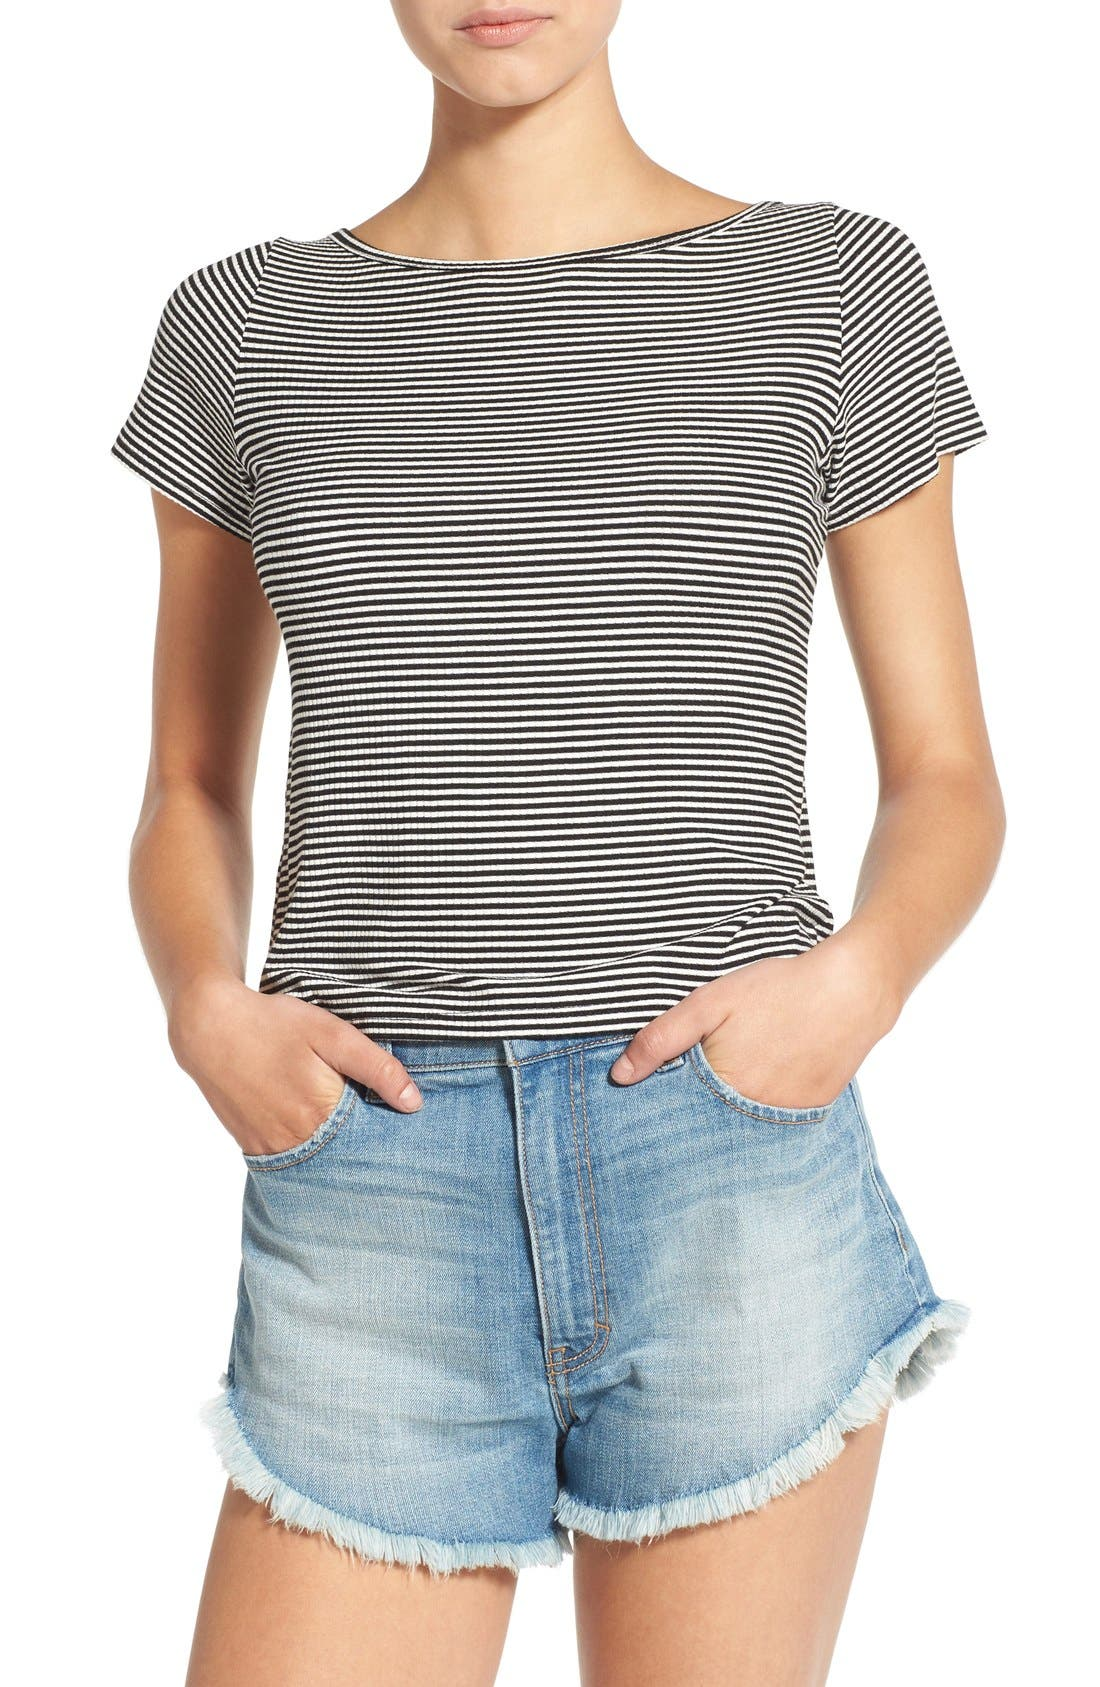 PST BY PROJECT SOCIAL T Project Social T Stripe Tee, Main, color, 001